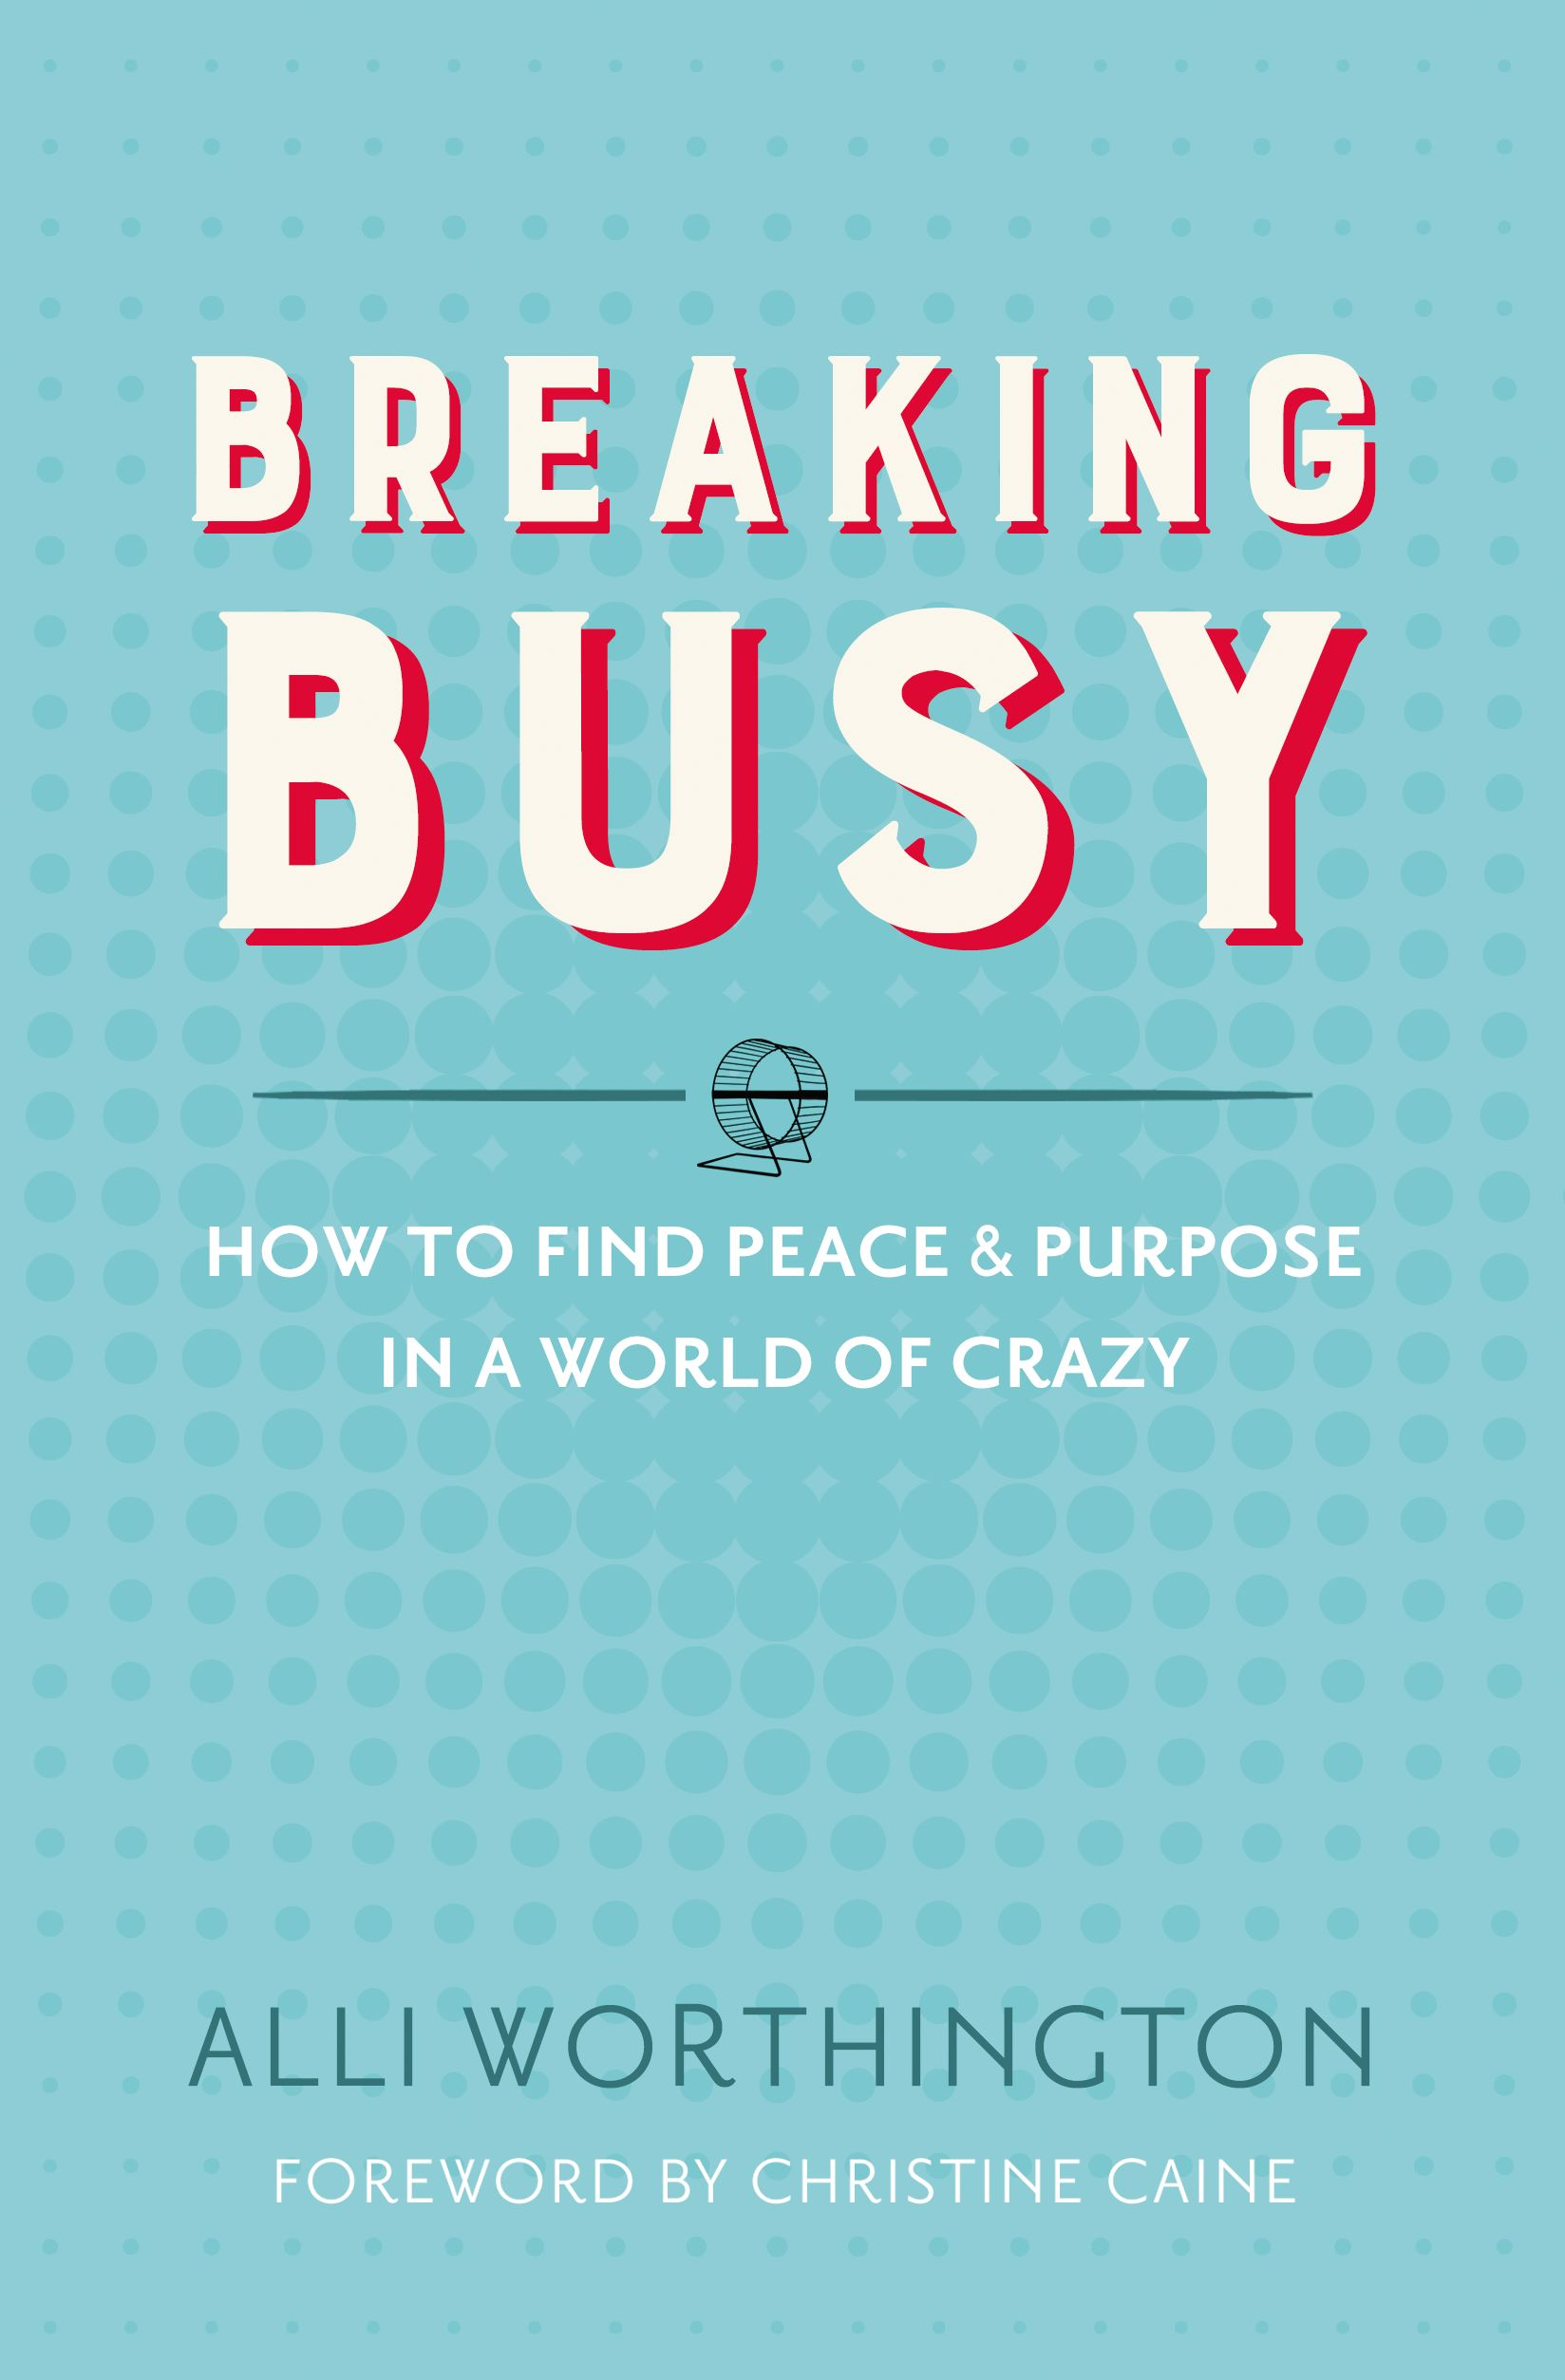 Breaking Busy: A Book Review